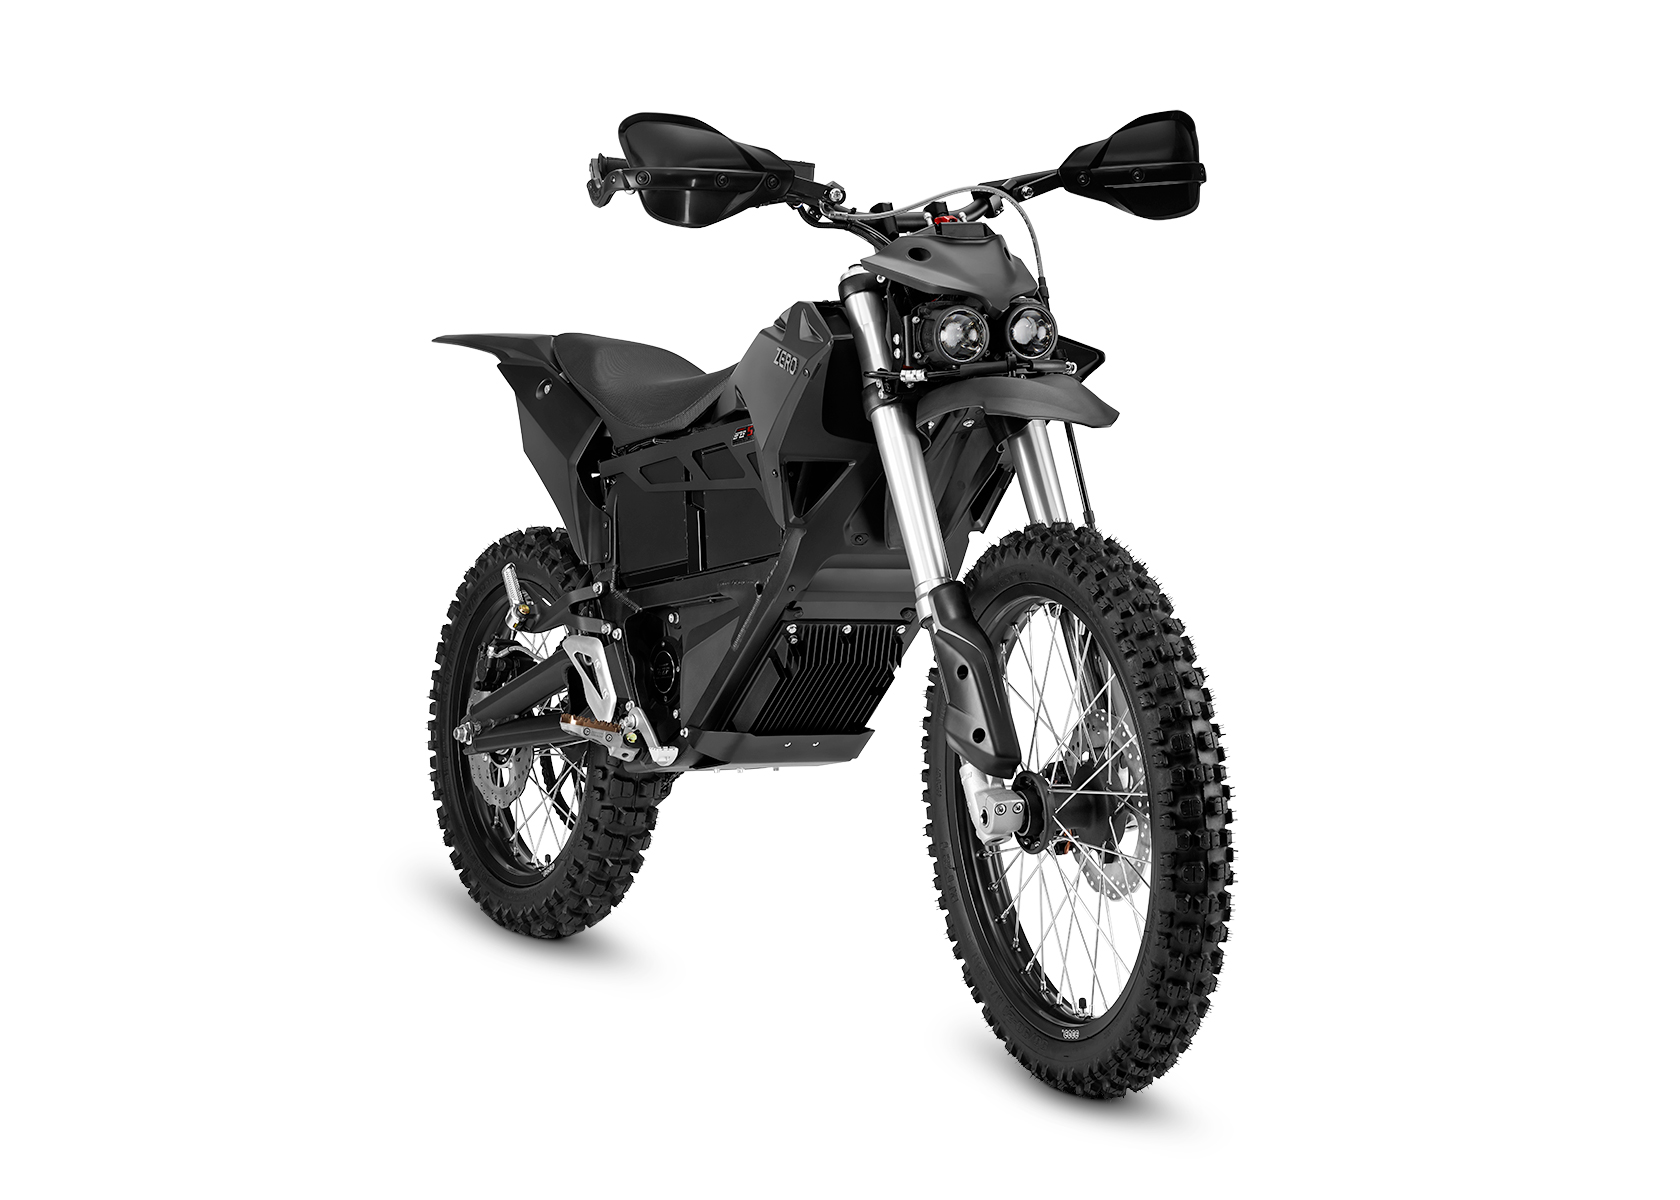 2015 Zero MMX Electric Motorcycle: Right Angle, White Background